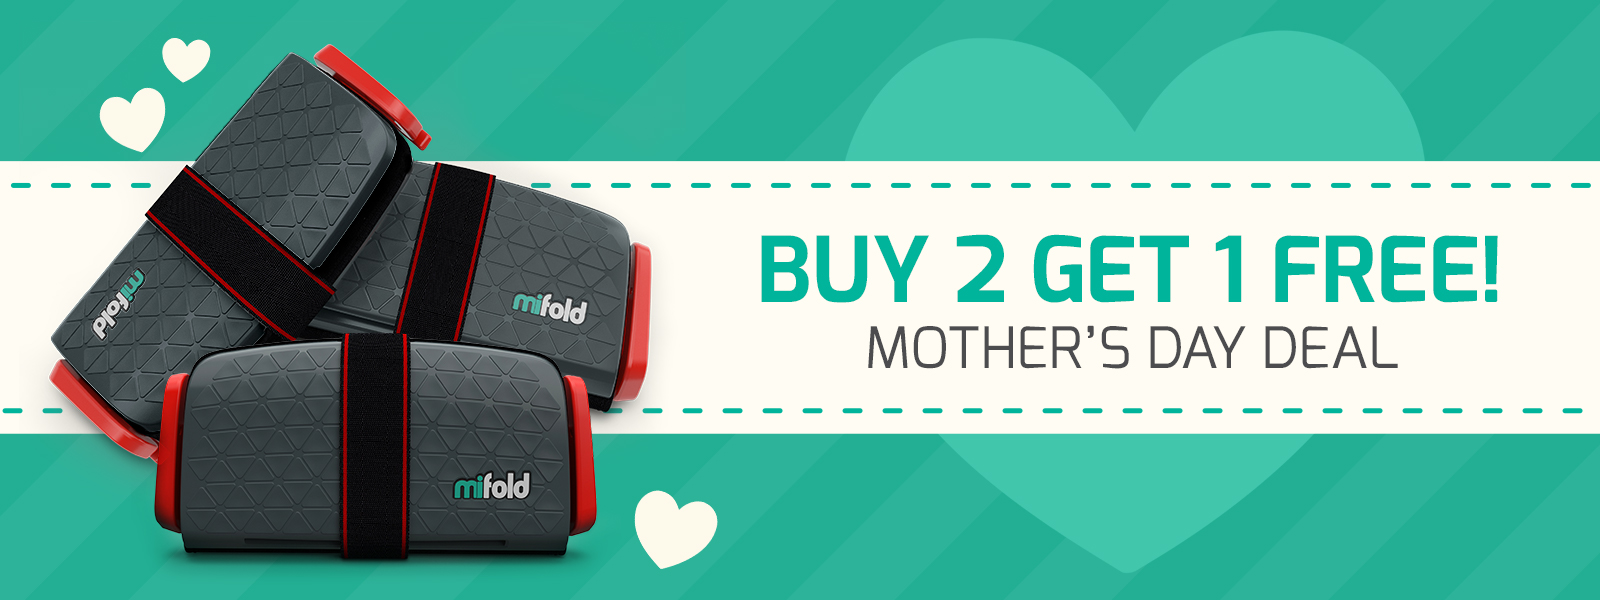 Buy 1 mifold GET the 2nd 50% OFF!